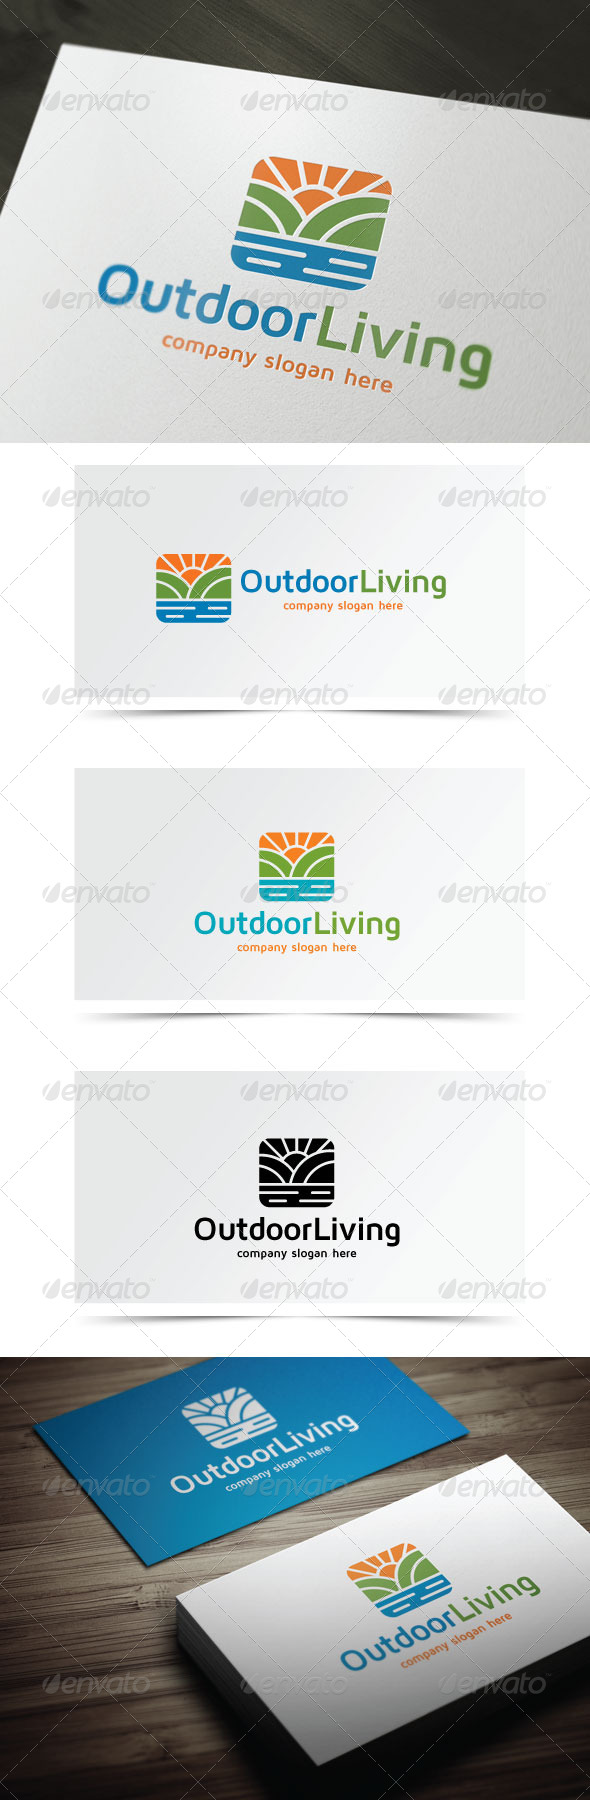 GraphicRiver Outdoor Living 5741811